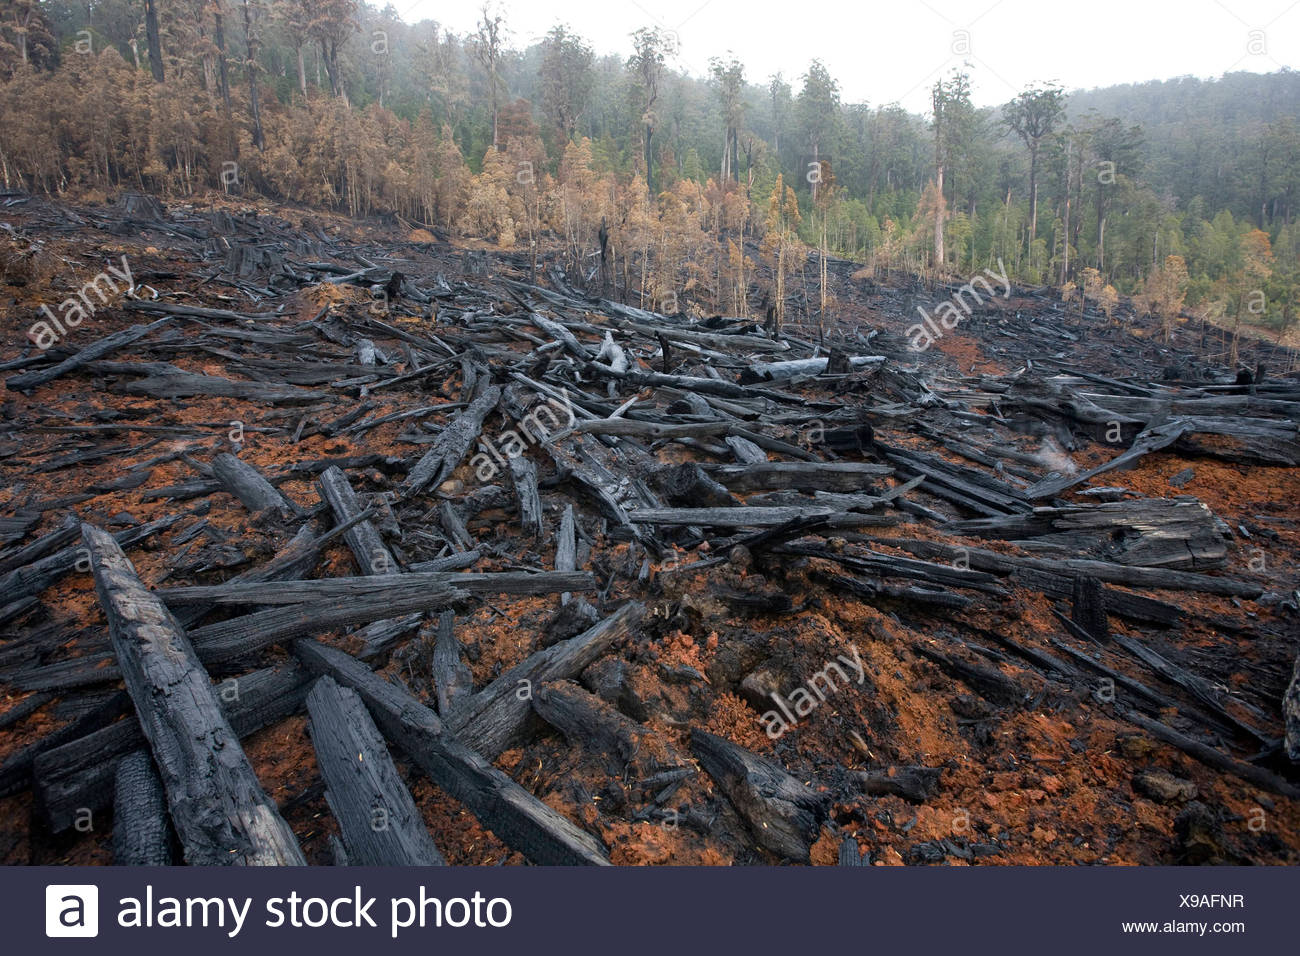 Clearfelled old-growth forest Stock Photo